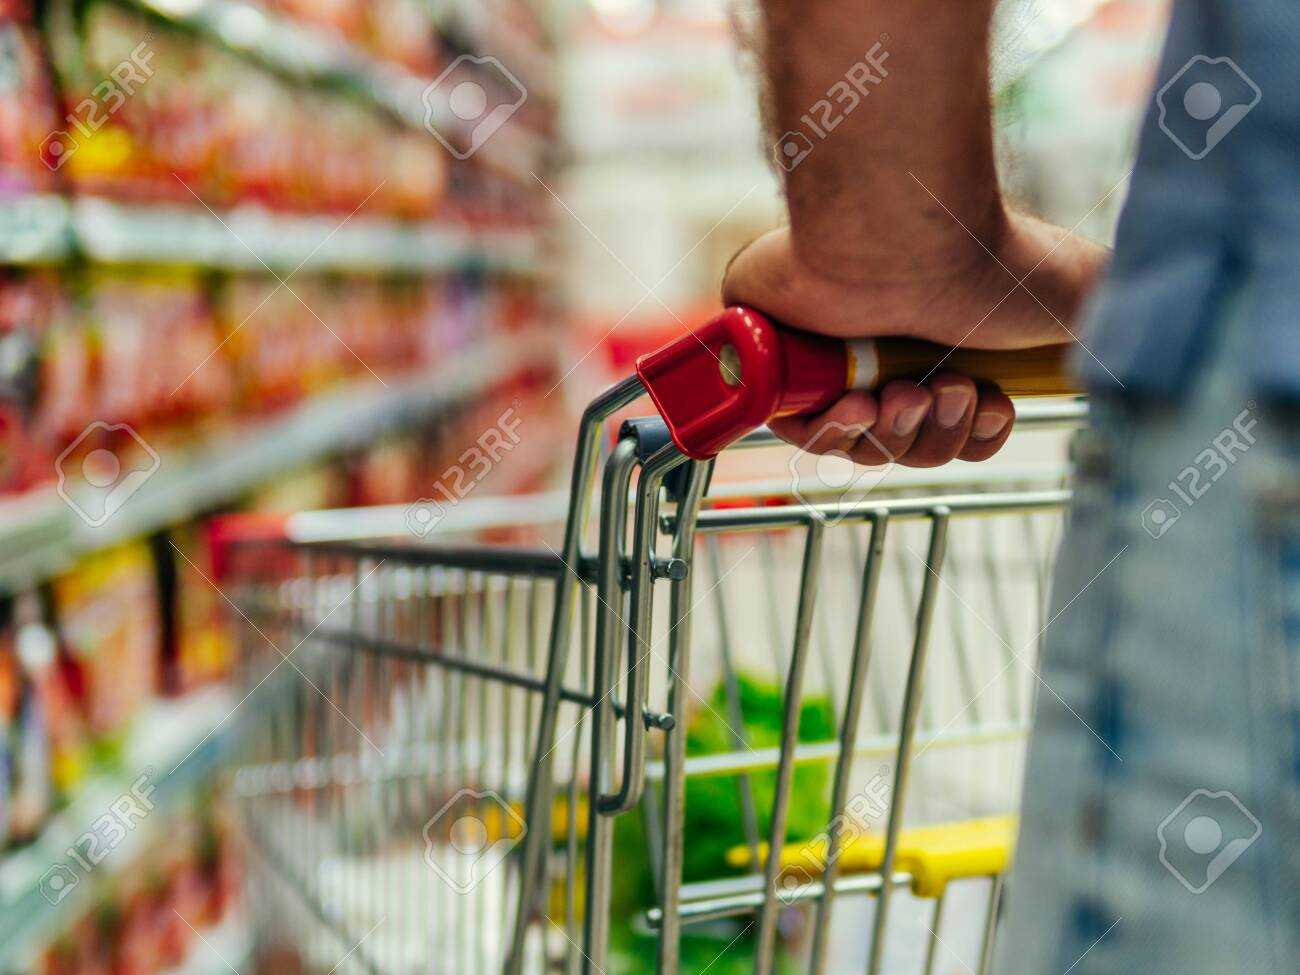 shopping trolley in supermarket aisle, copy space - 125413228